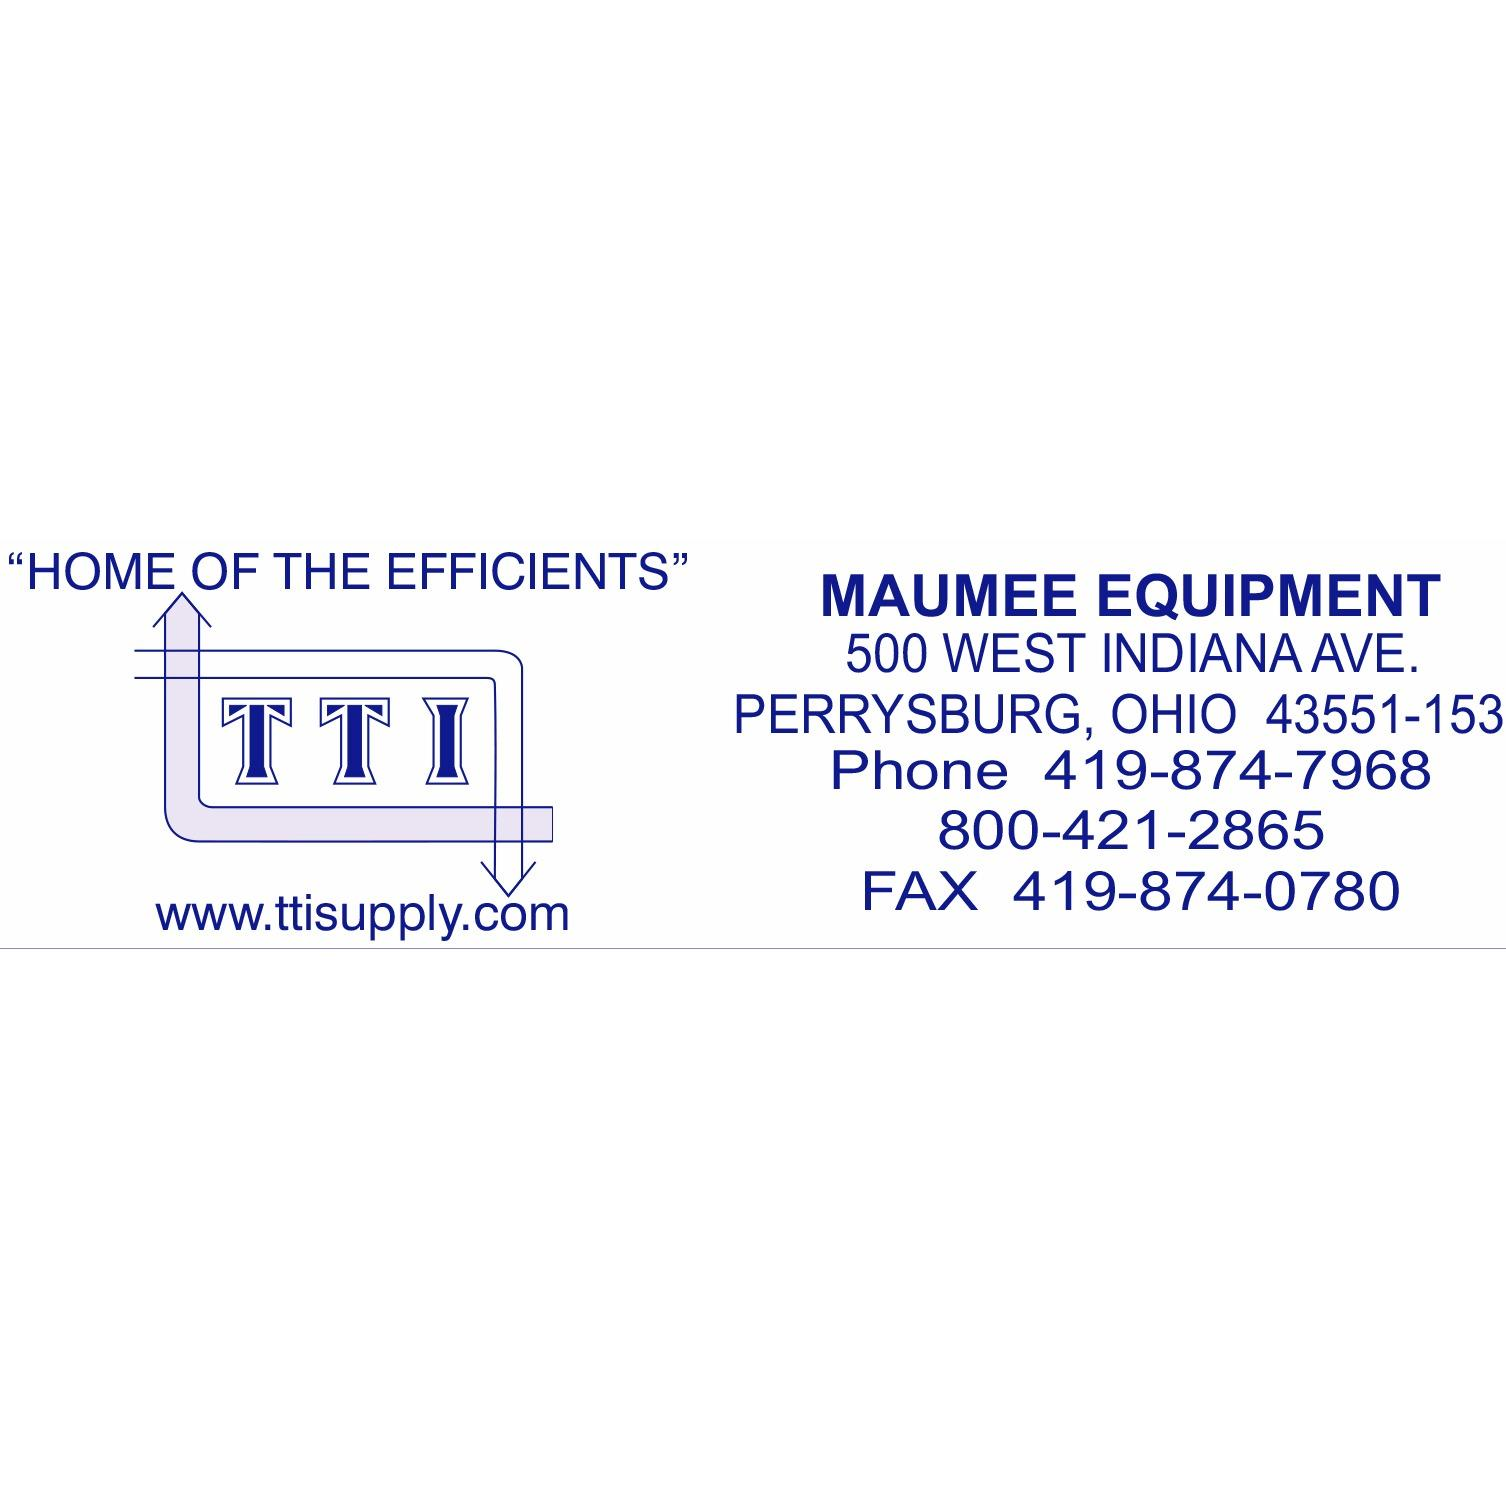 T.T.I. Maumee Equipment - Perrysburg, OH - Heating & Air Conditioning